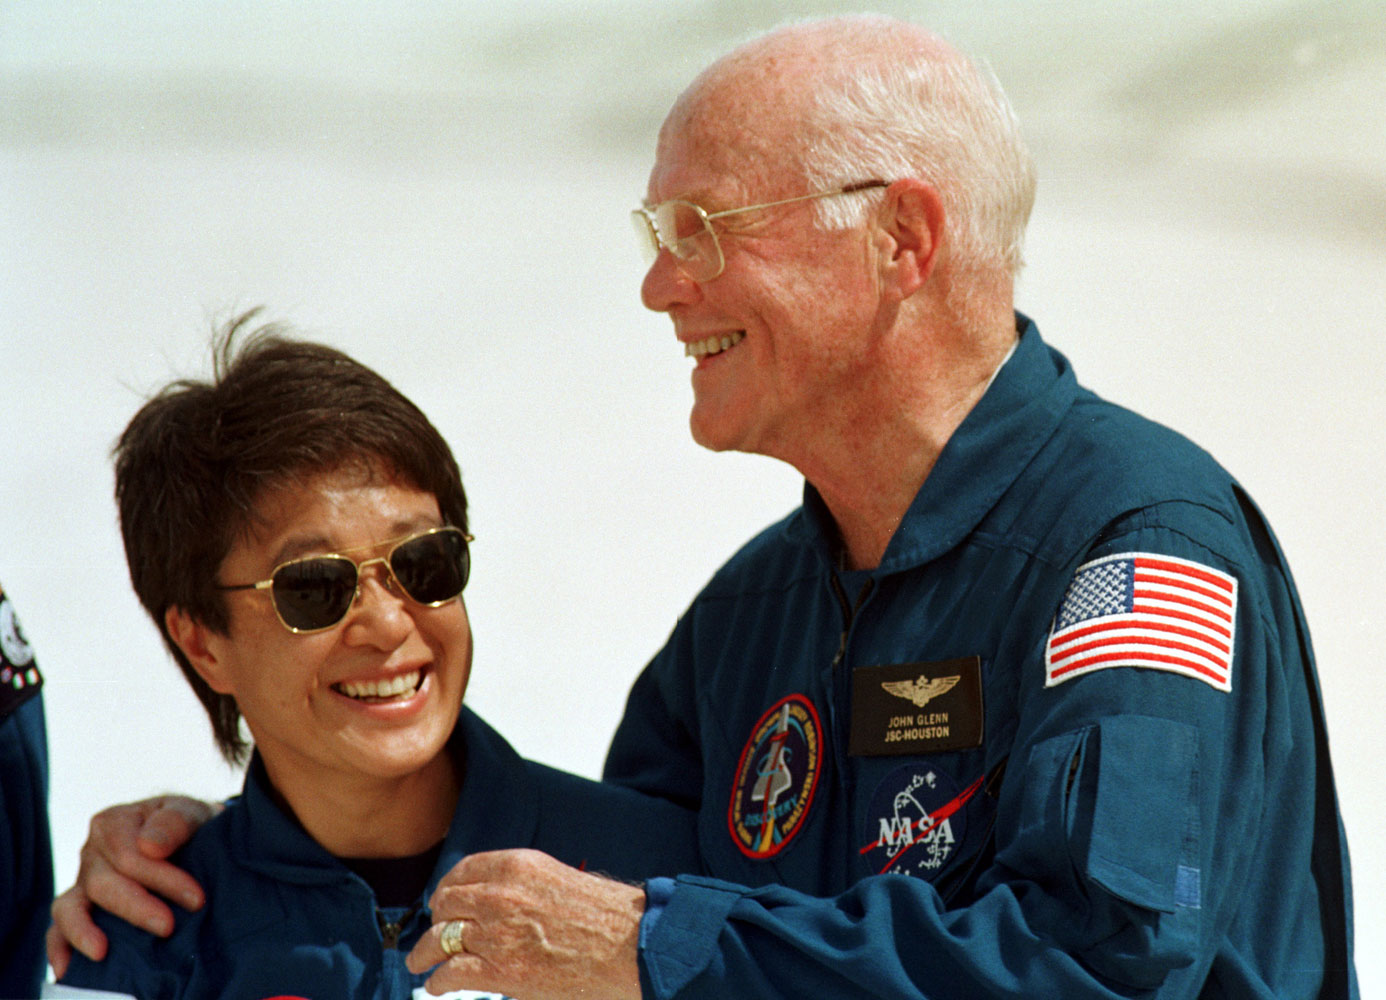 Japanese astronaut Chiaki Mukai and John Glenn at a press conference, on Oct. 8, 1998. Mukai was Japan's first woman in space.